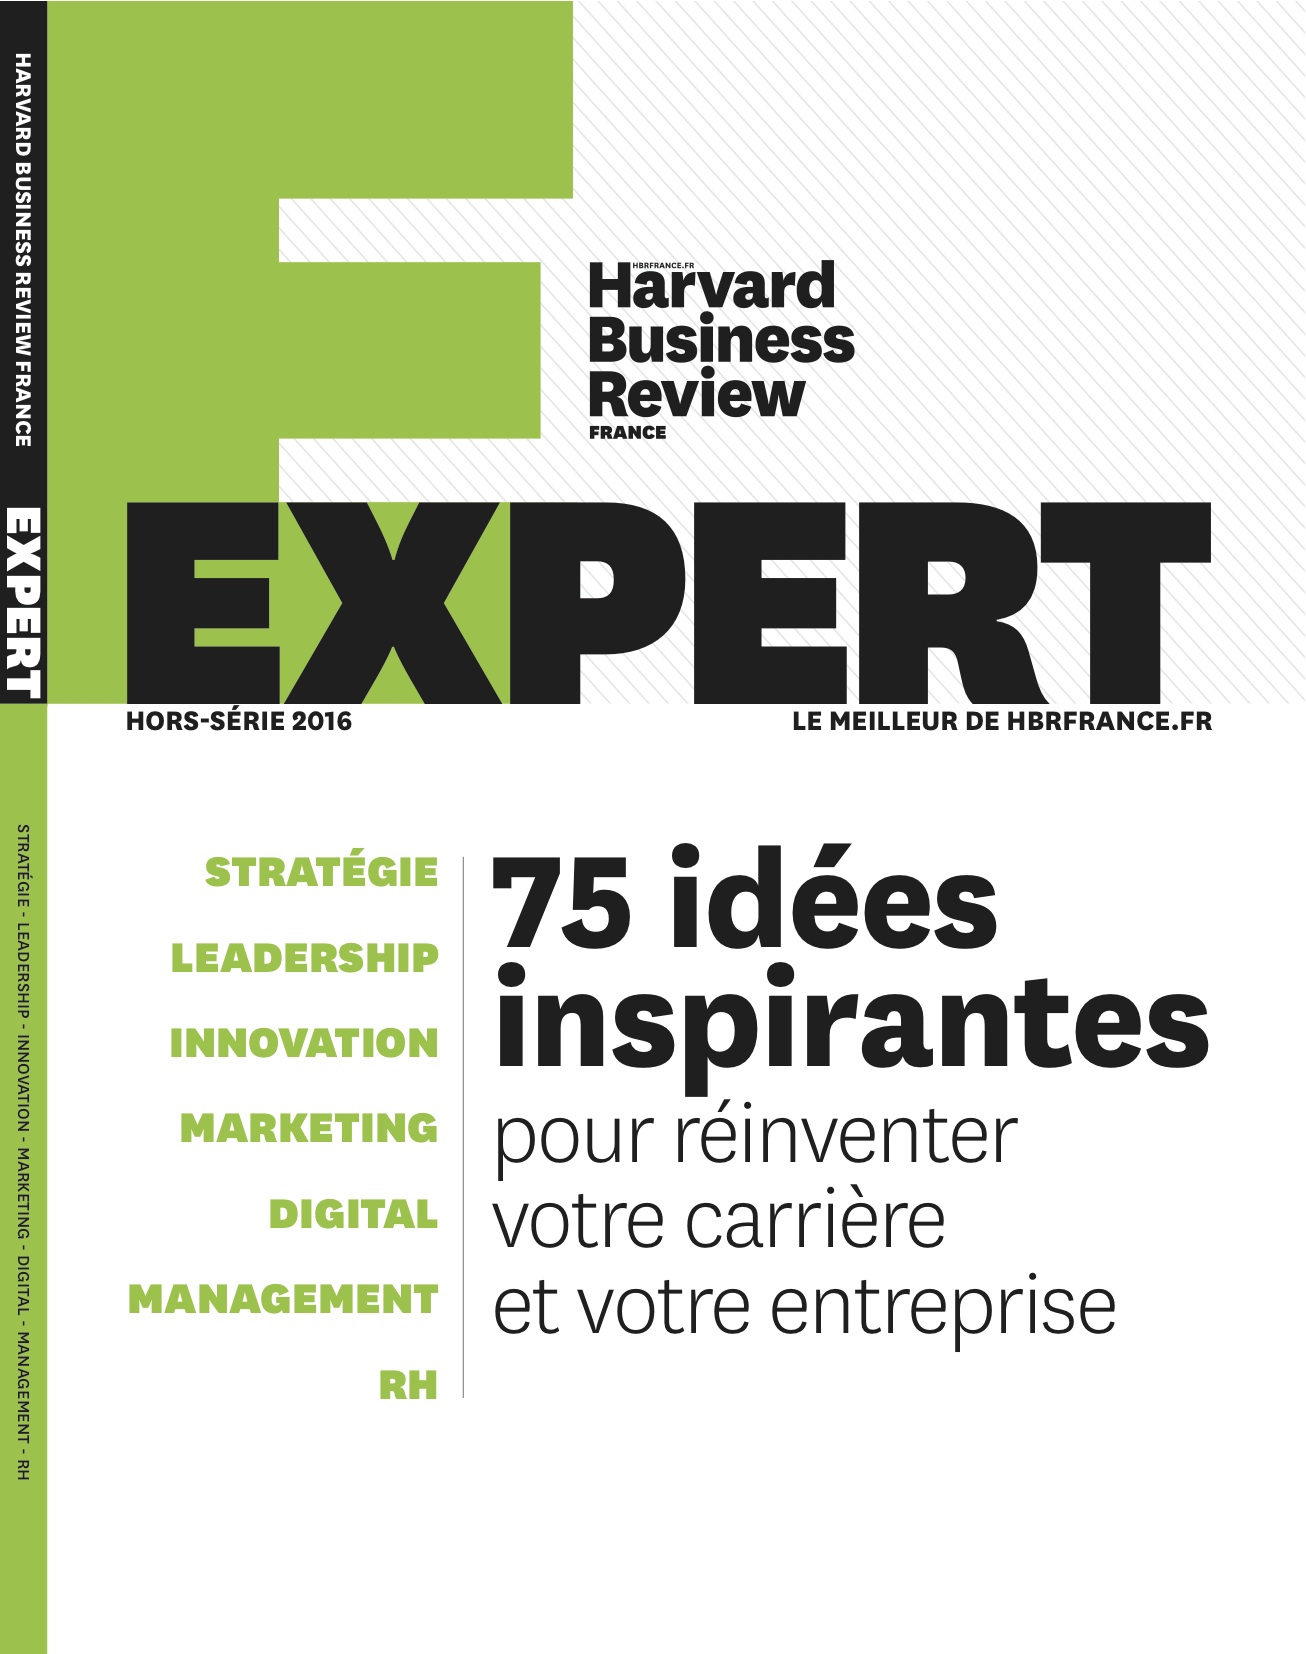 couvexpert1-harvard-business-review-hors-serie